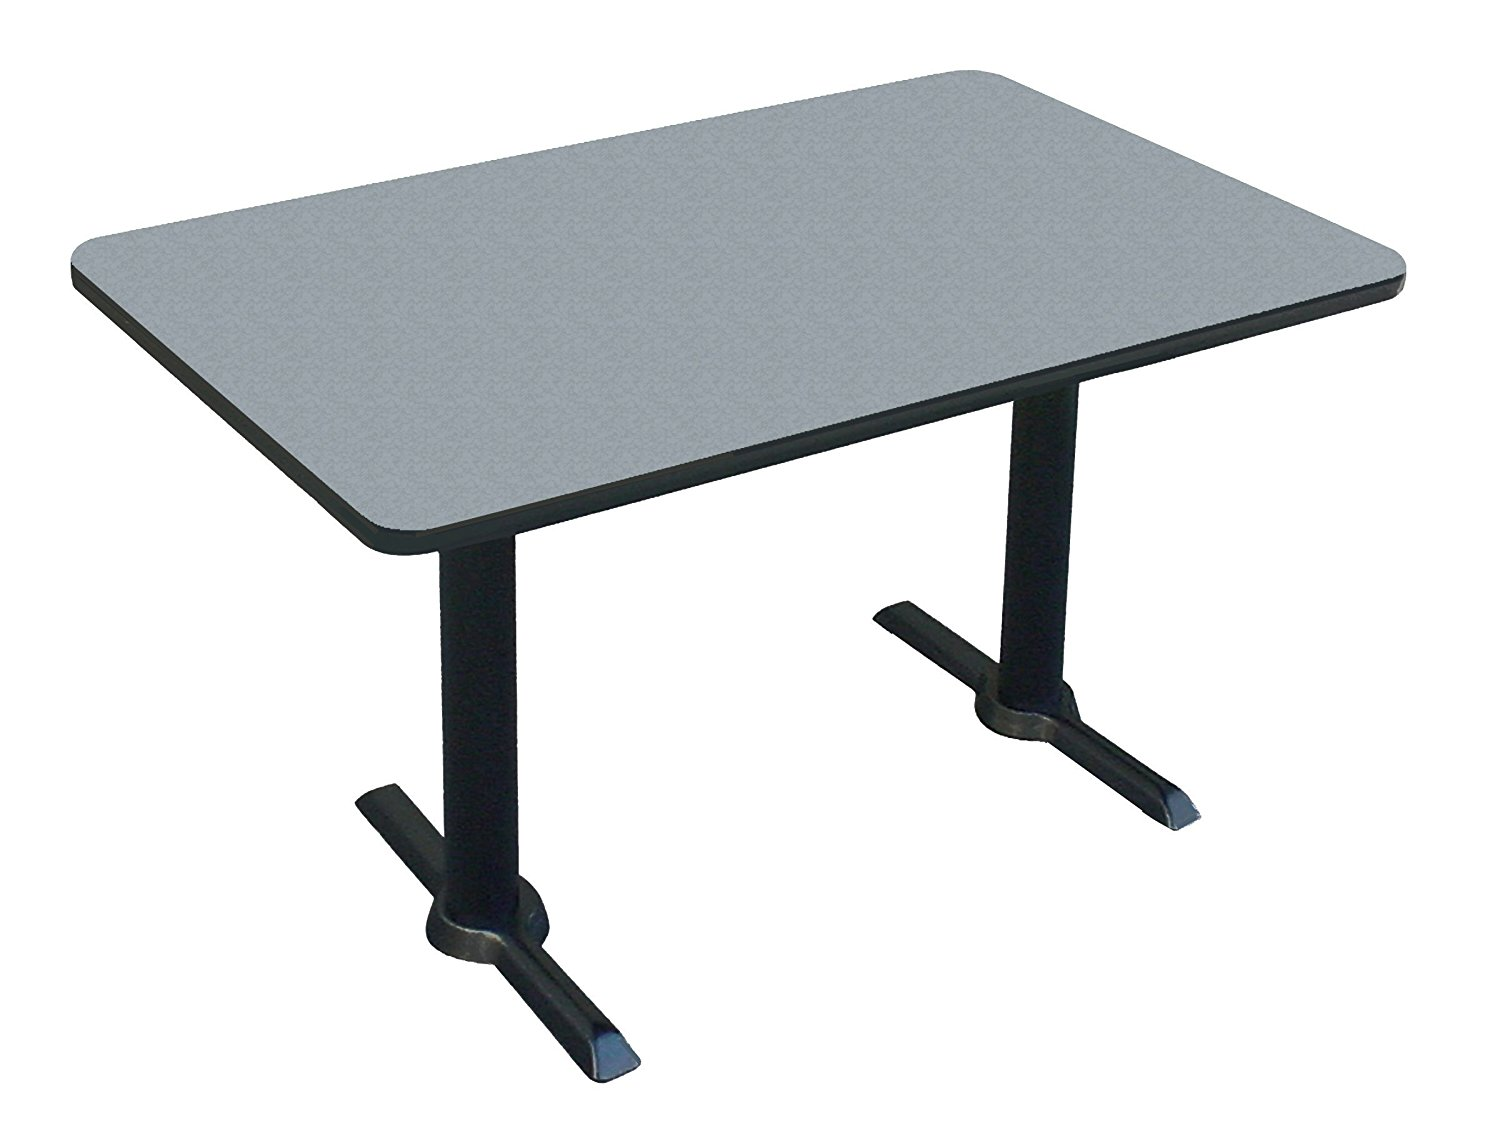 Astounding Correll Btt3060 15 High Pressure Cafe And Breakroom Table Gray Granite 30 X 60 Fixed Height Home Remodeling Inspirations Cosmcuboardxyz